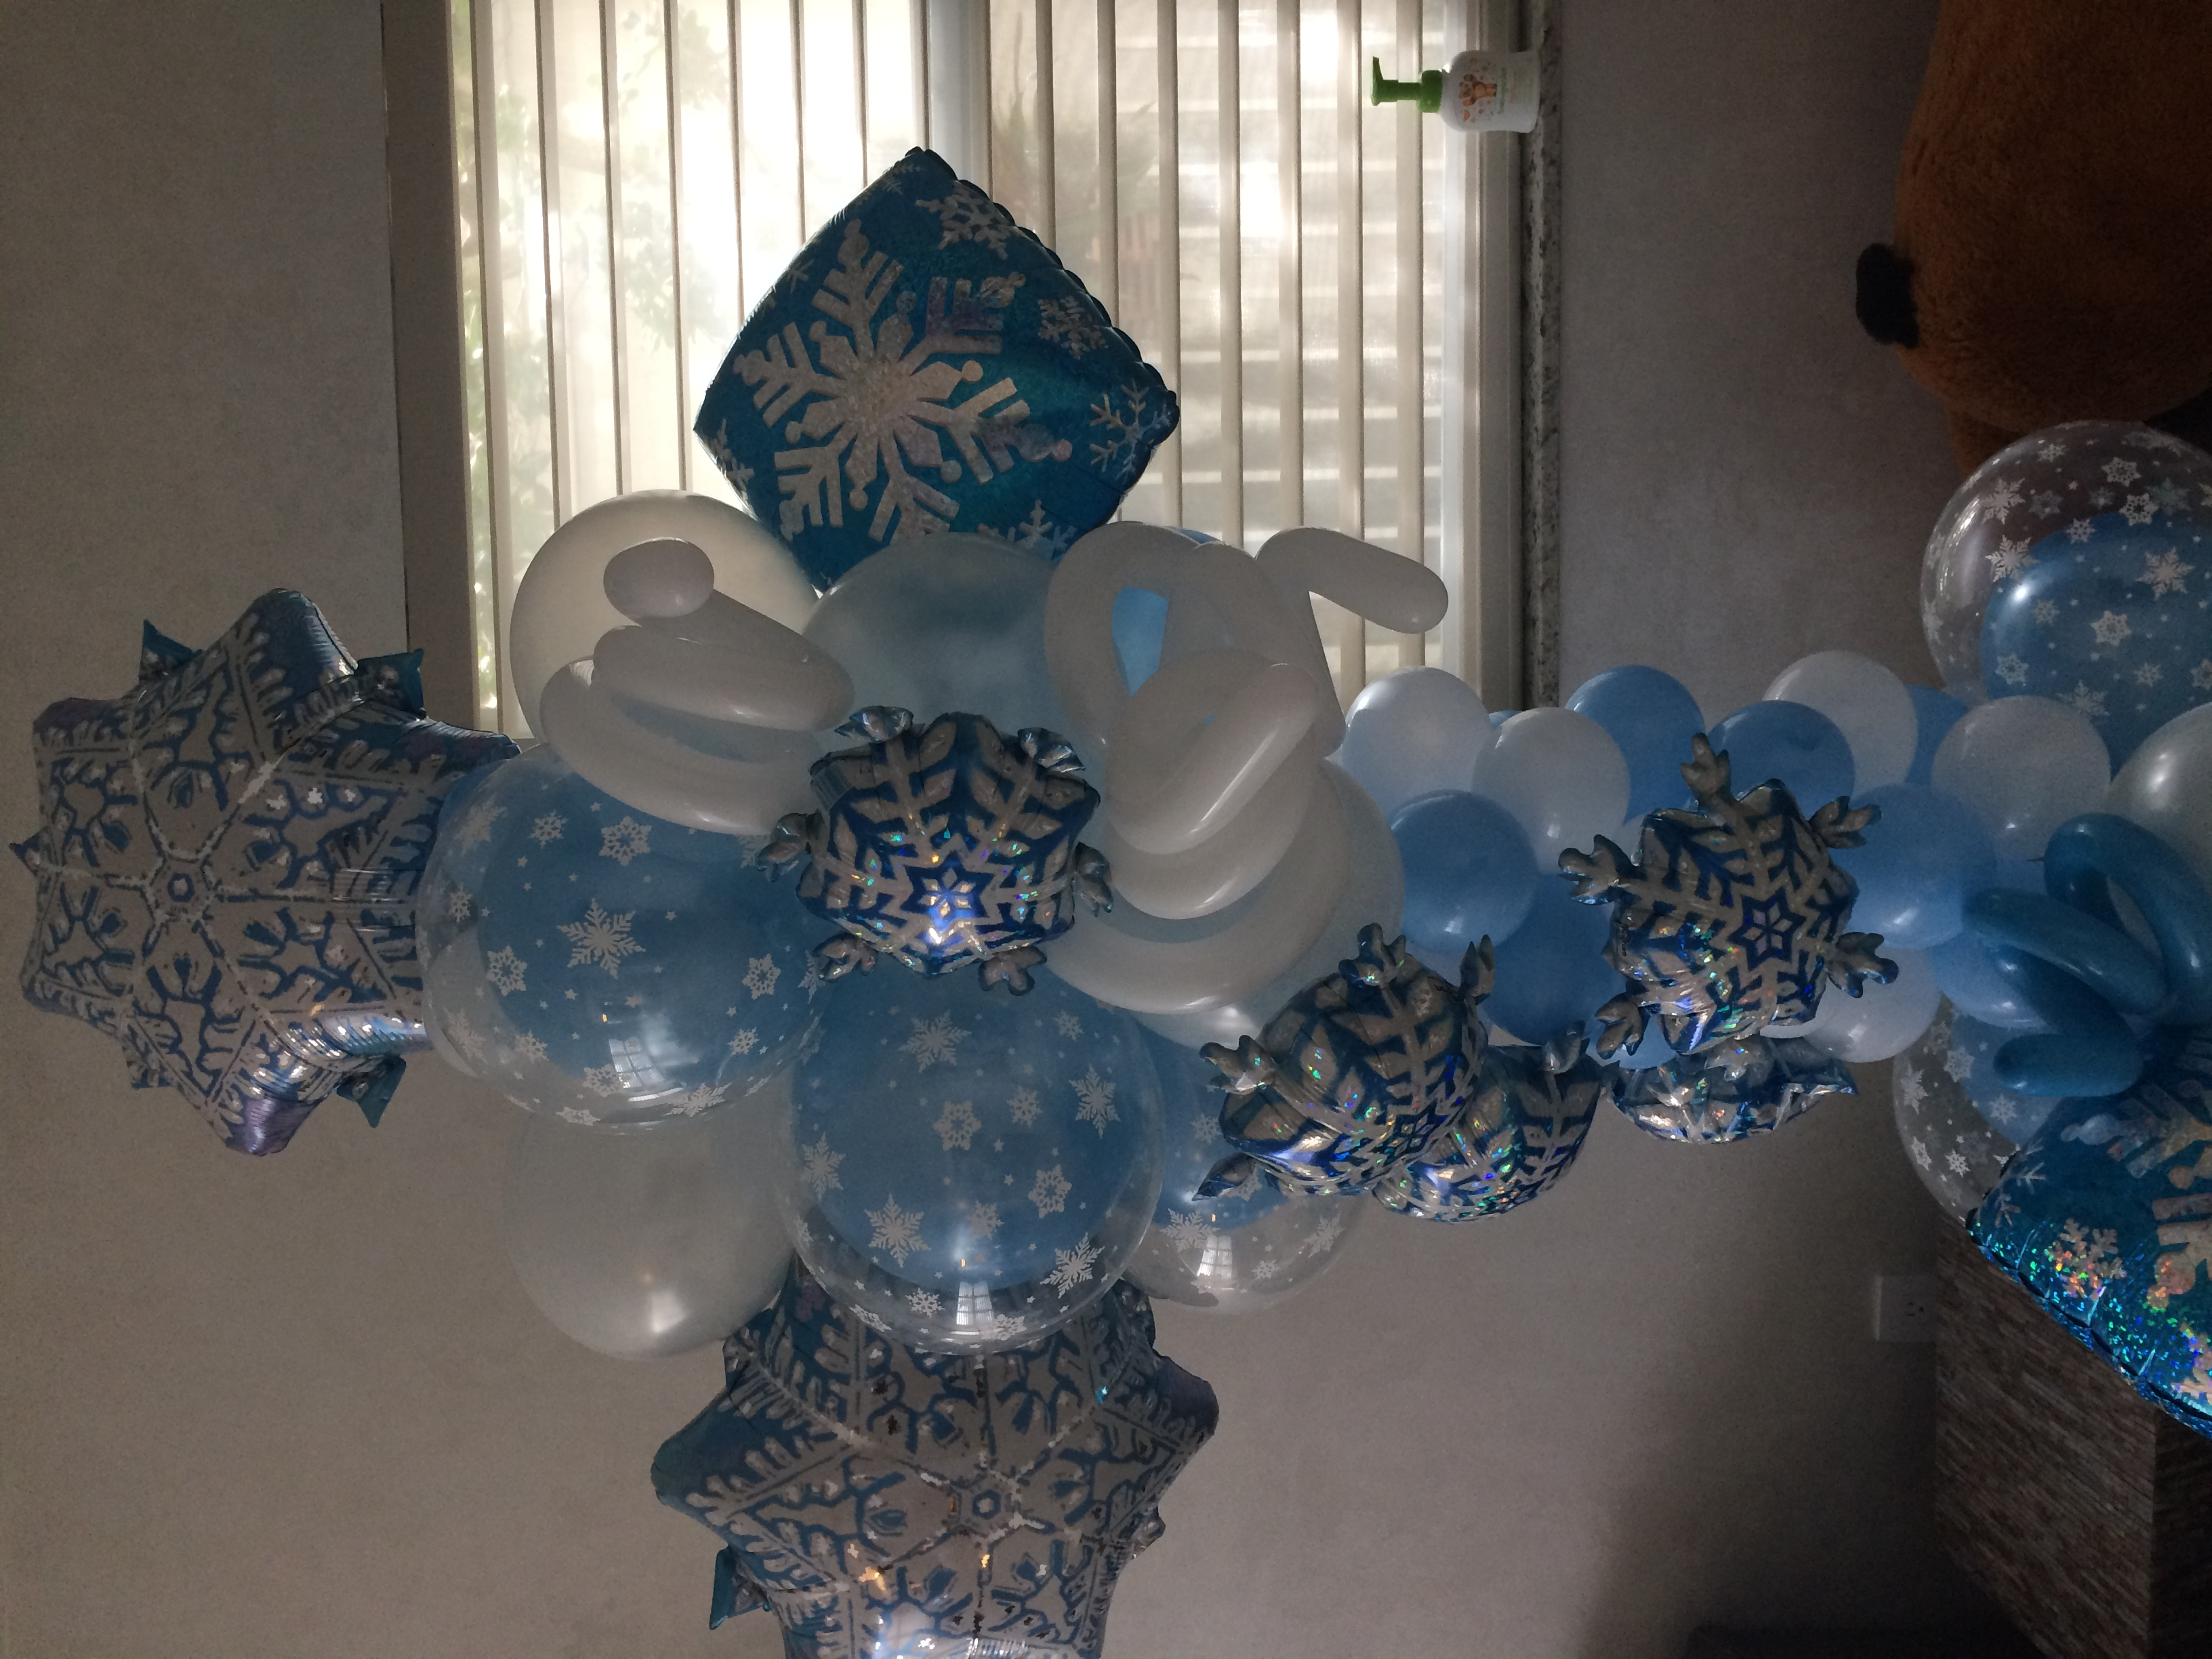 Winter Themed Balloon Arch